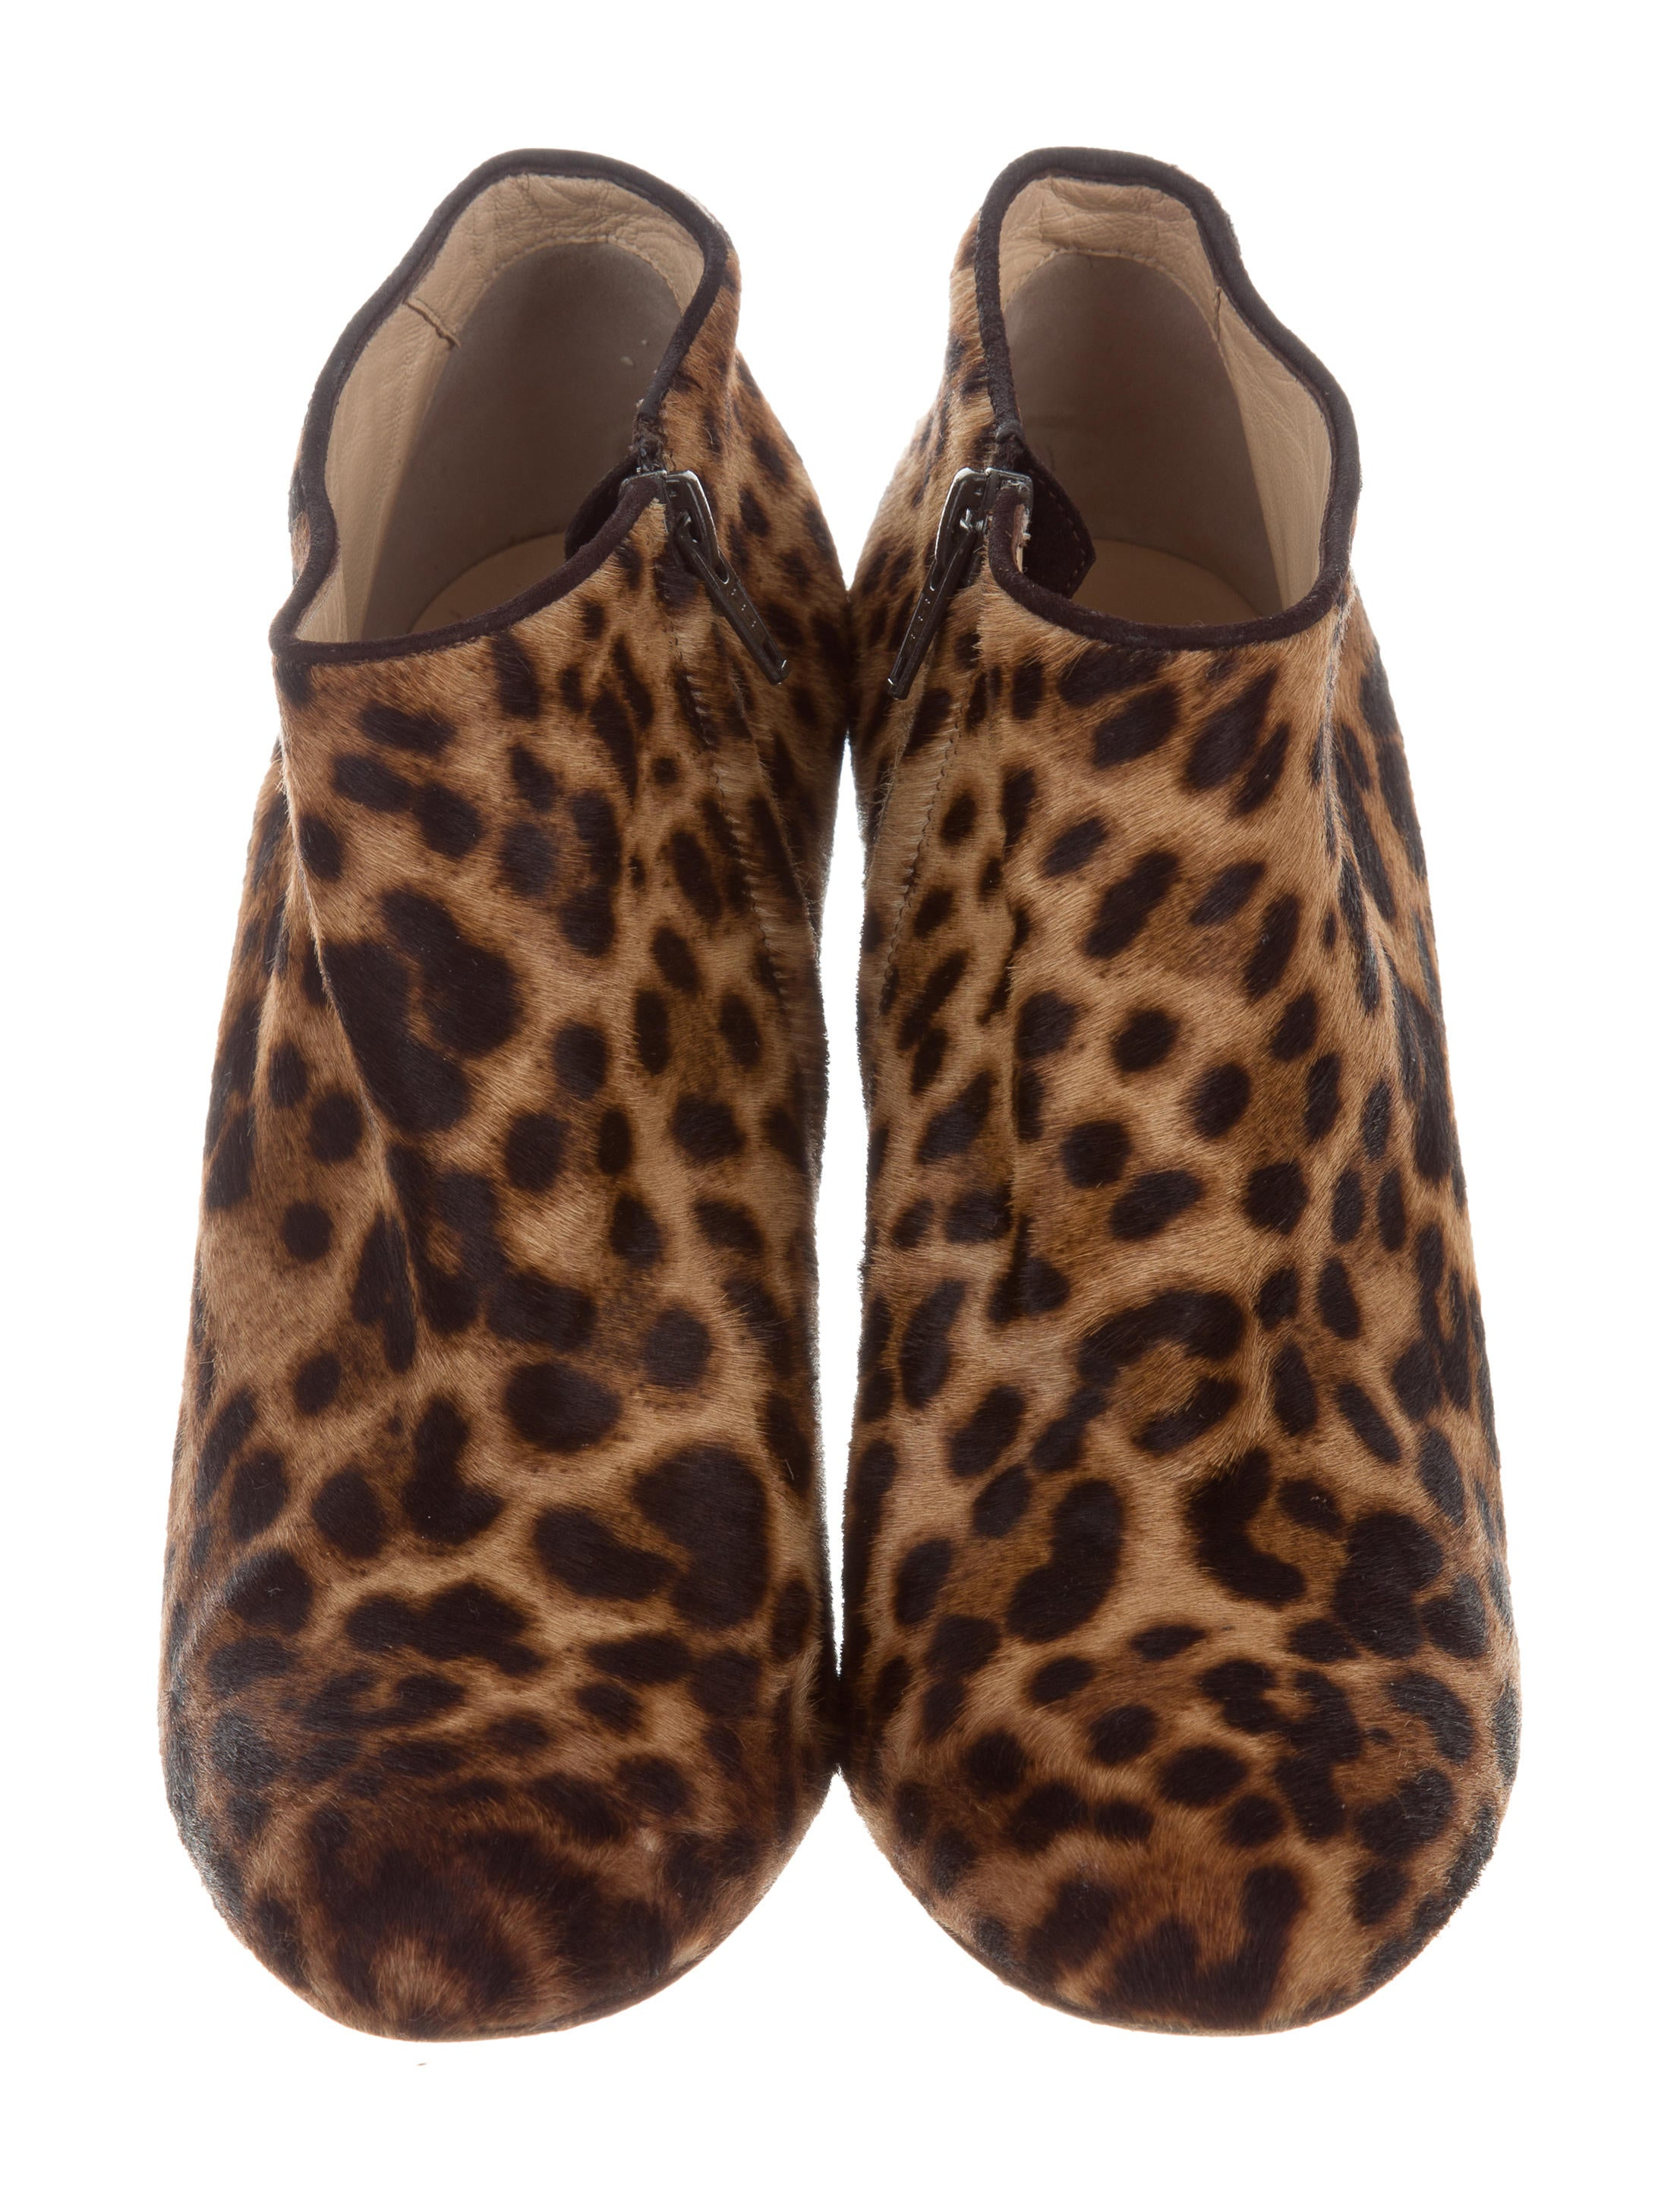 Christian Louboutin Ponyhair Leopard Print Booties Shoes